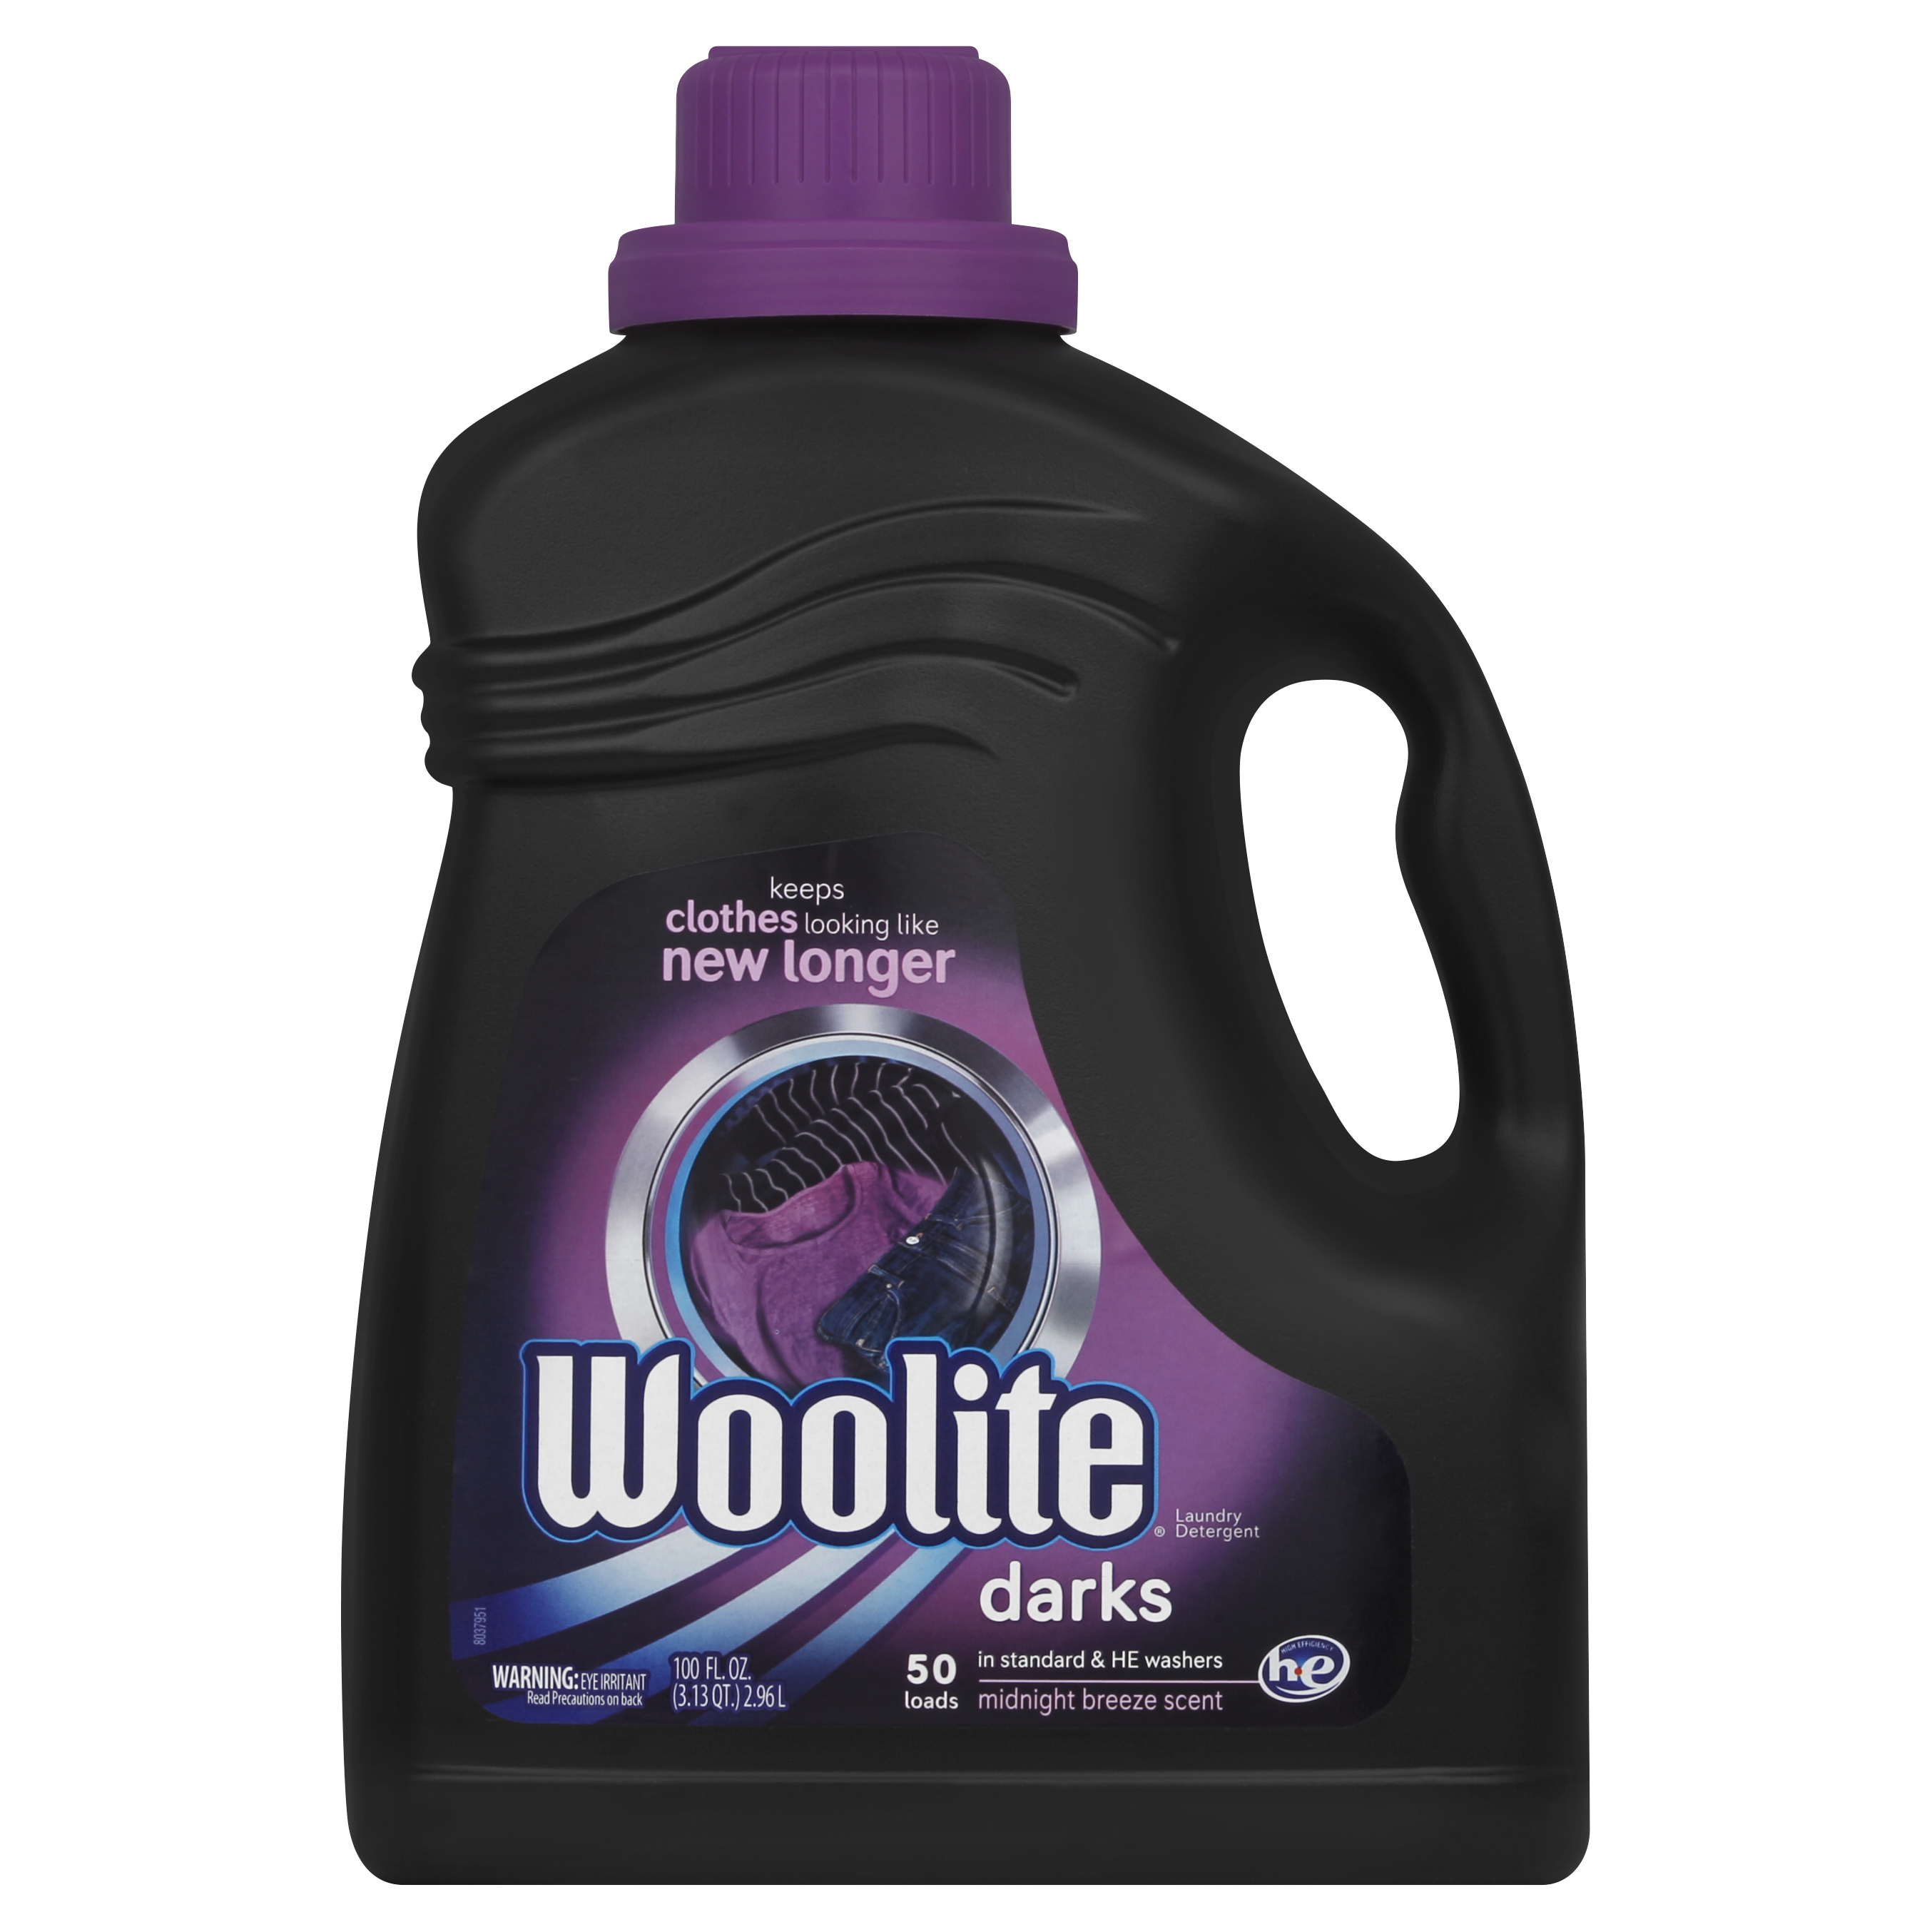 Woolite Dark Care Laundry Detergent, 100 Ounce